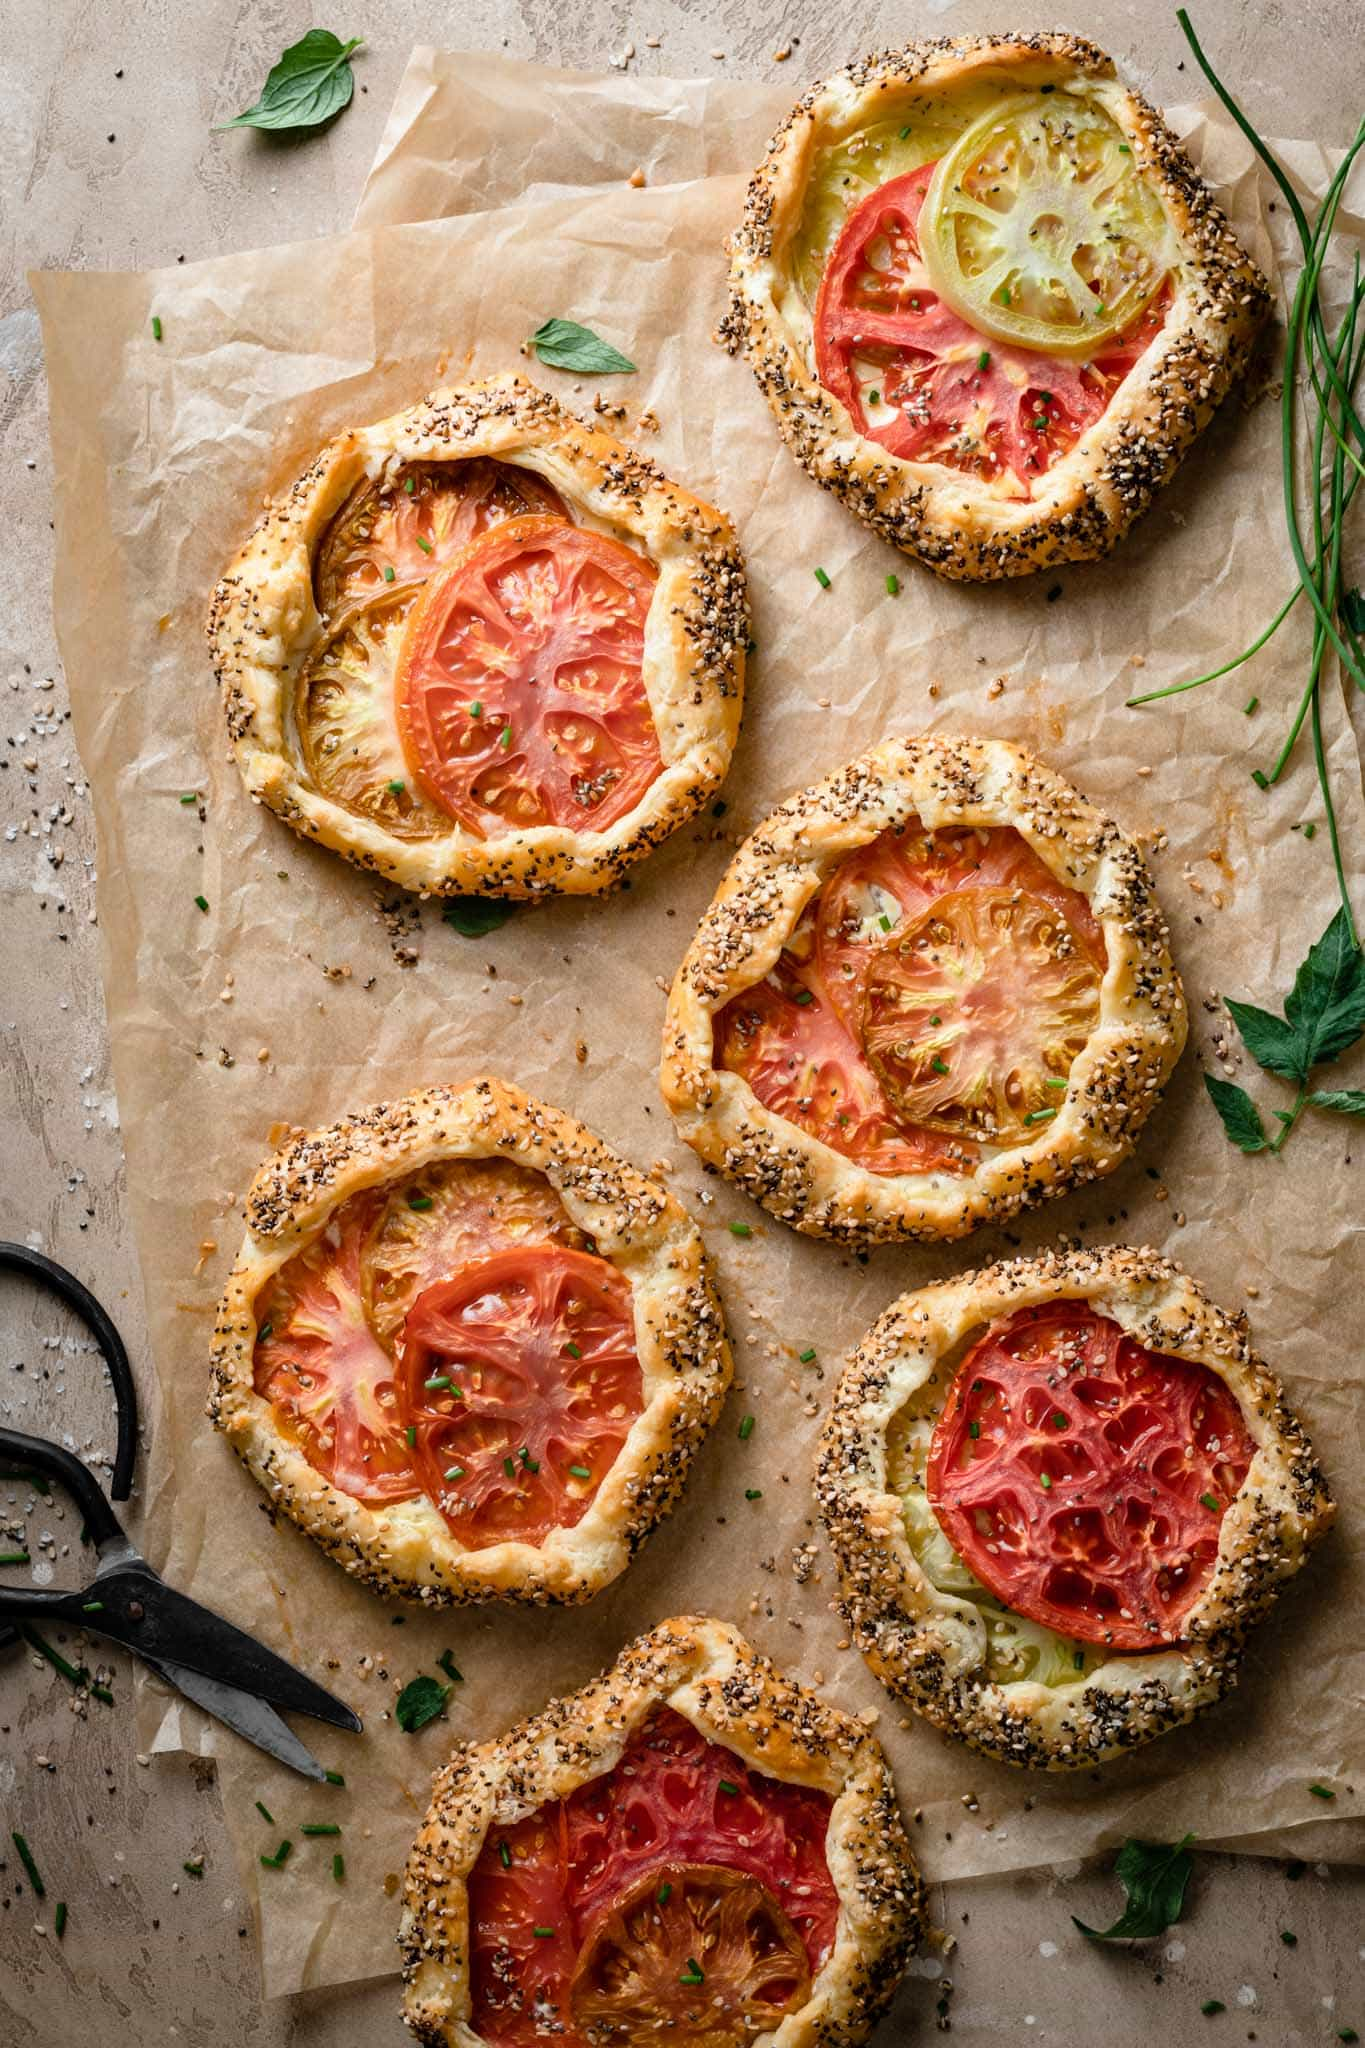 Savory hand pies made with tomatoes and goat cheese.